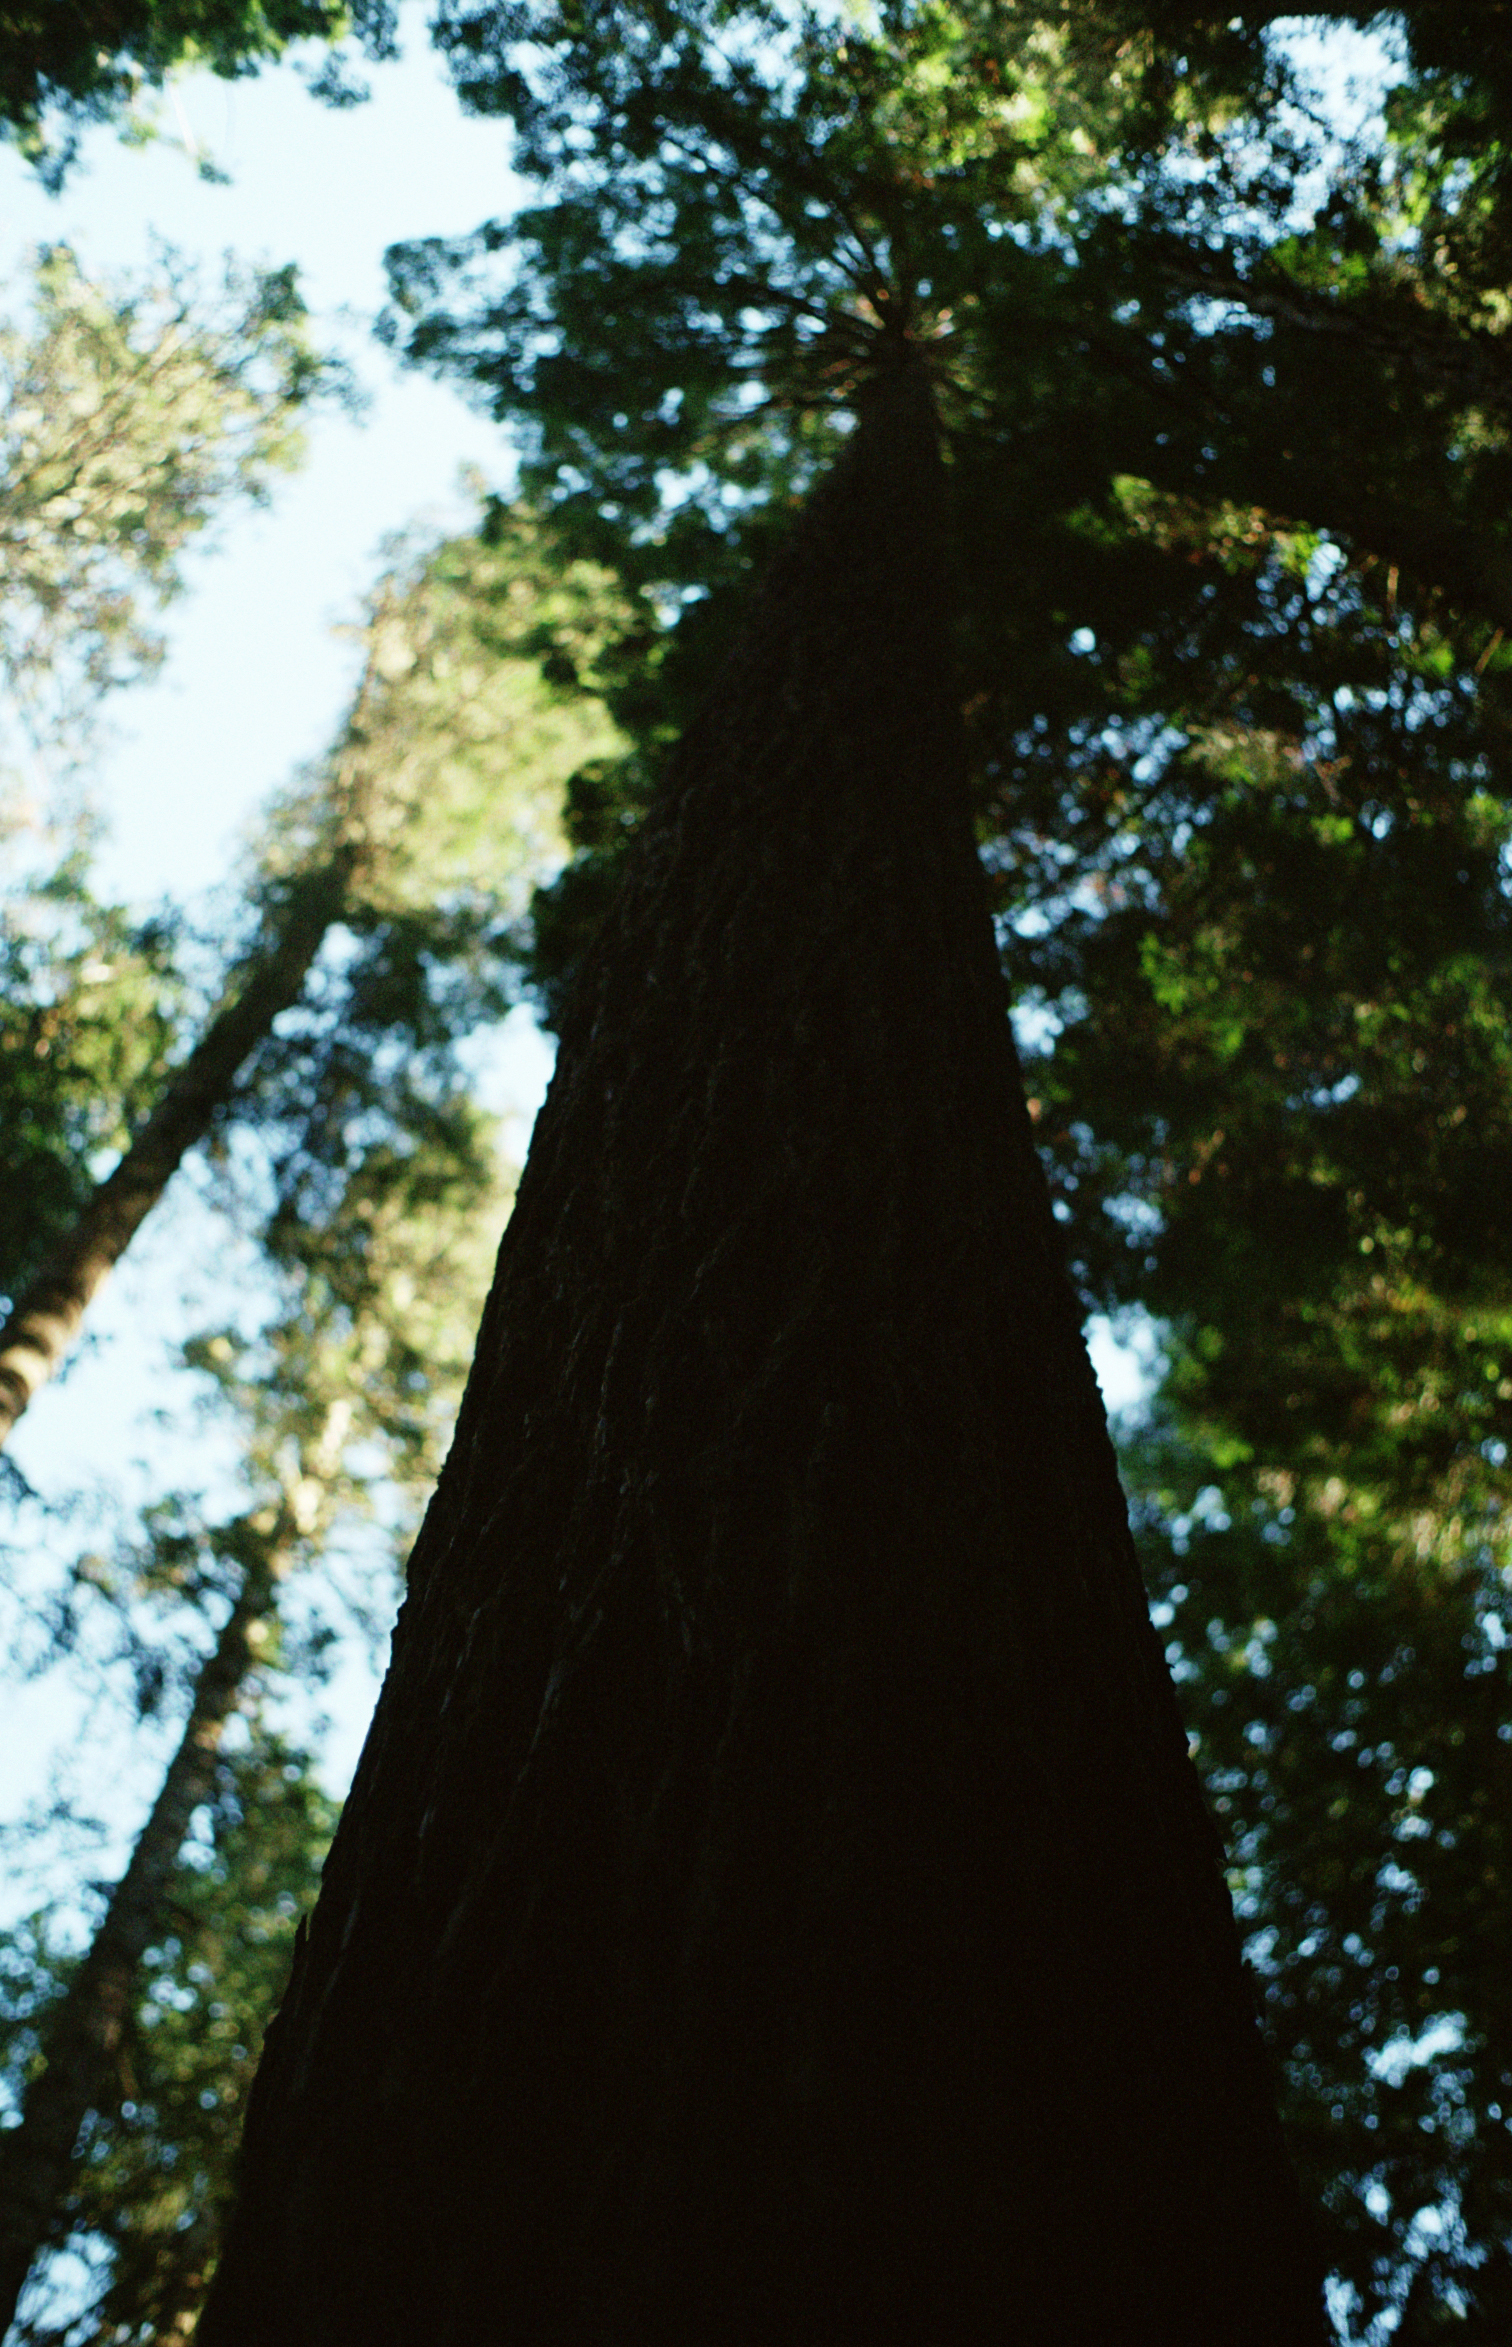 The Giant Redwoods of California